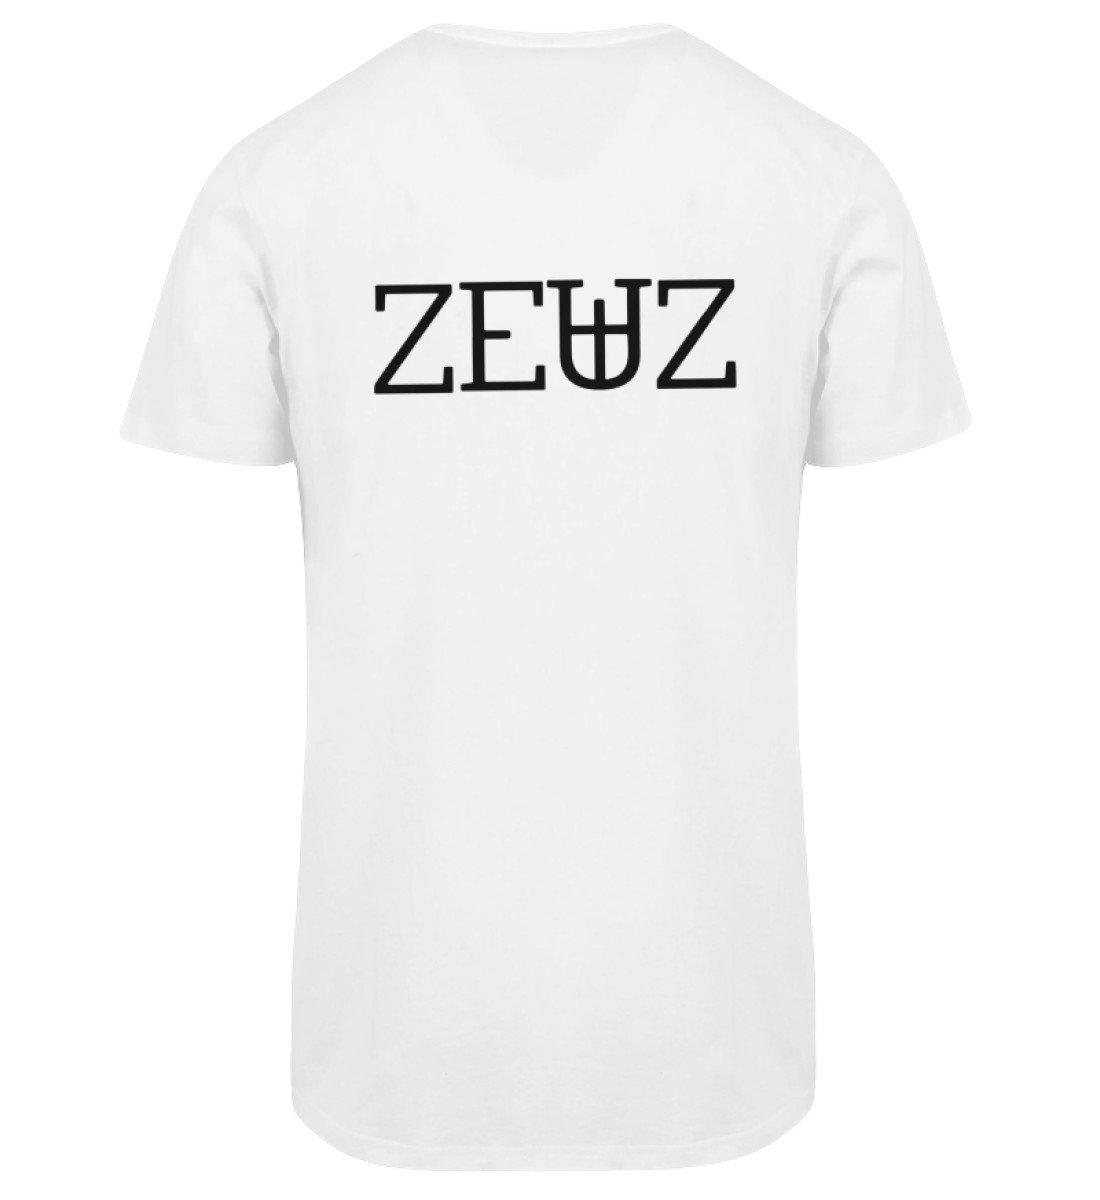 ZEUZ RAVE-ON! ®️ WHITE LONGTEE TSHIRT - Herren Long Tee Men Long Tee White / S - Rave On!® der Club & Techno Szene Shop für Coole Junge Mode Streetwear Style & Fashion Outfits + Sexy Festival 420 Stuff